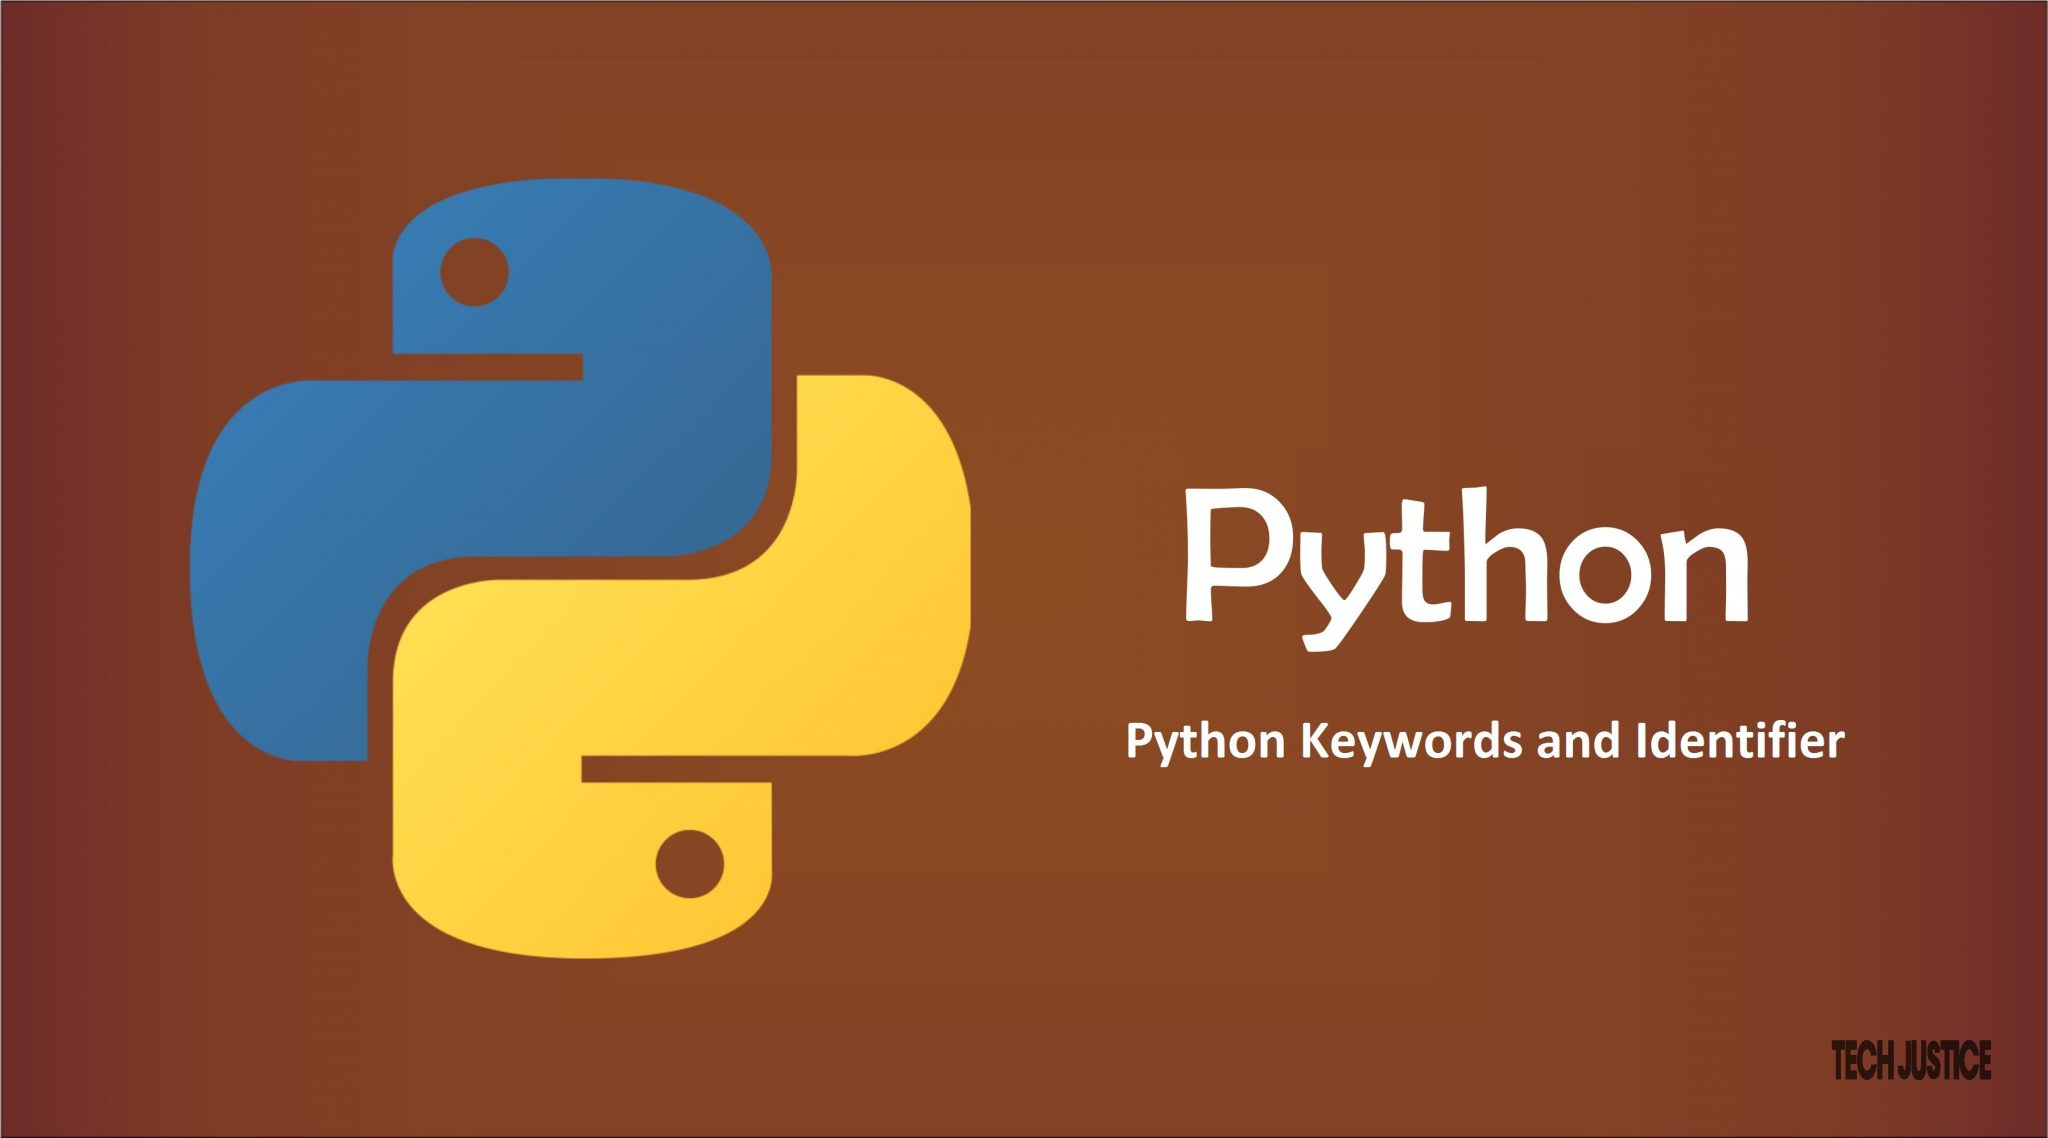 Python Keywords and Identifier Tech Justice